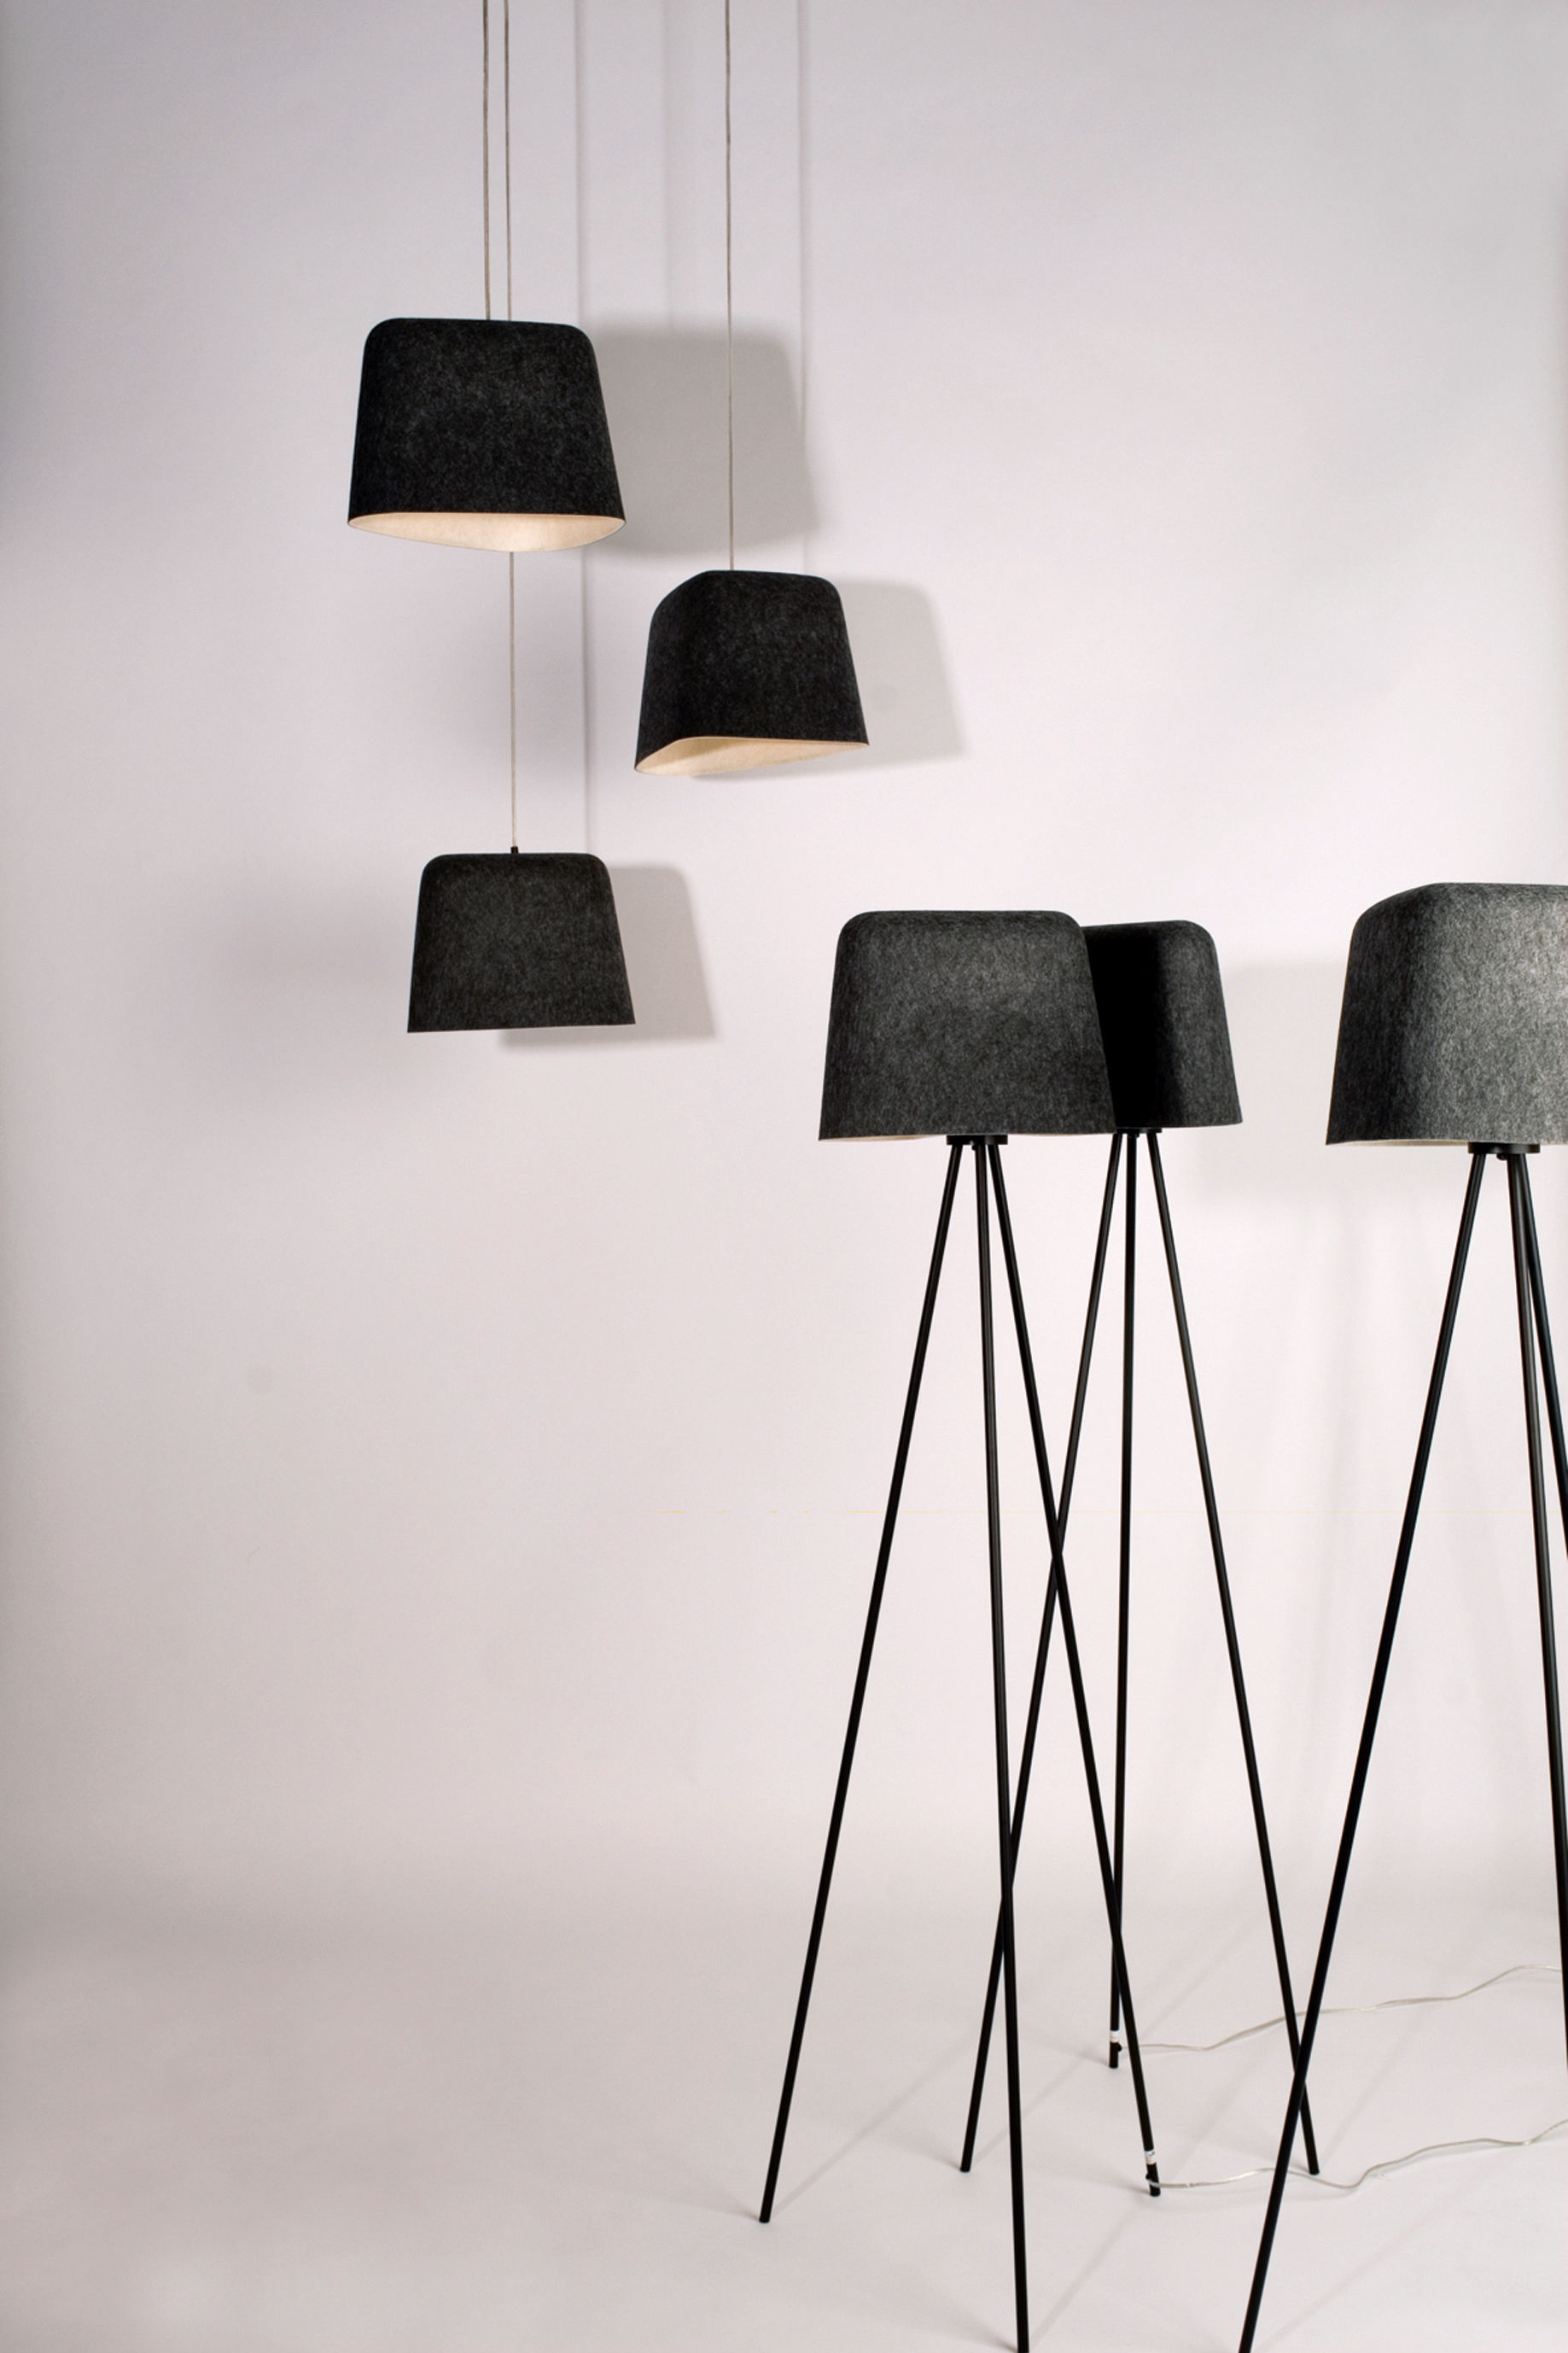 felt shade tom dixon stehleuchte. Black Bedroom Furniture Sets. Home Design Ideas